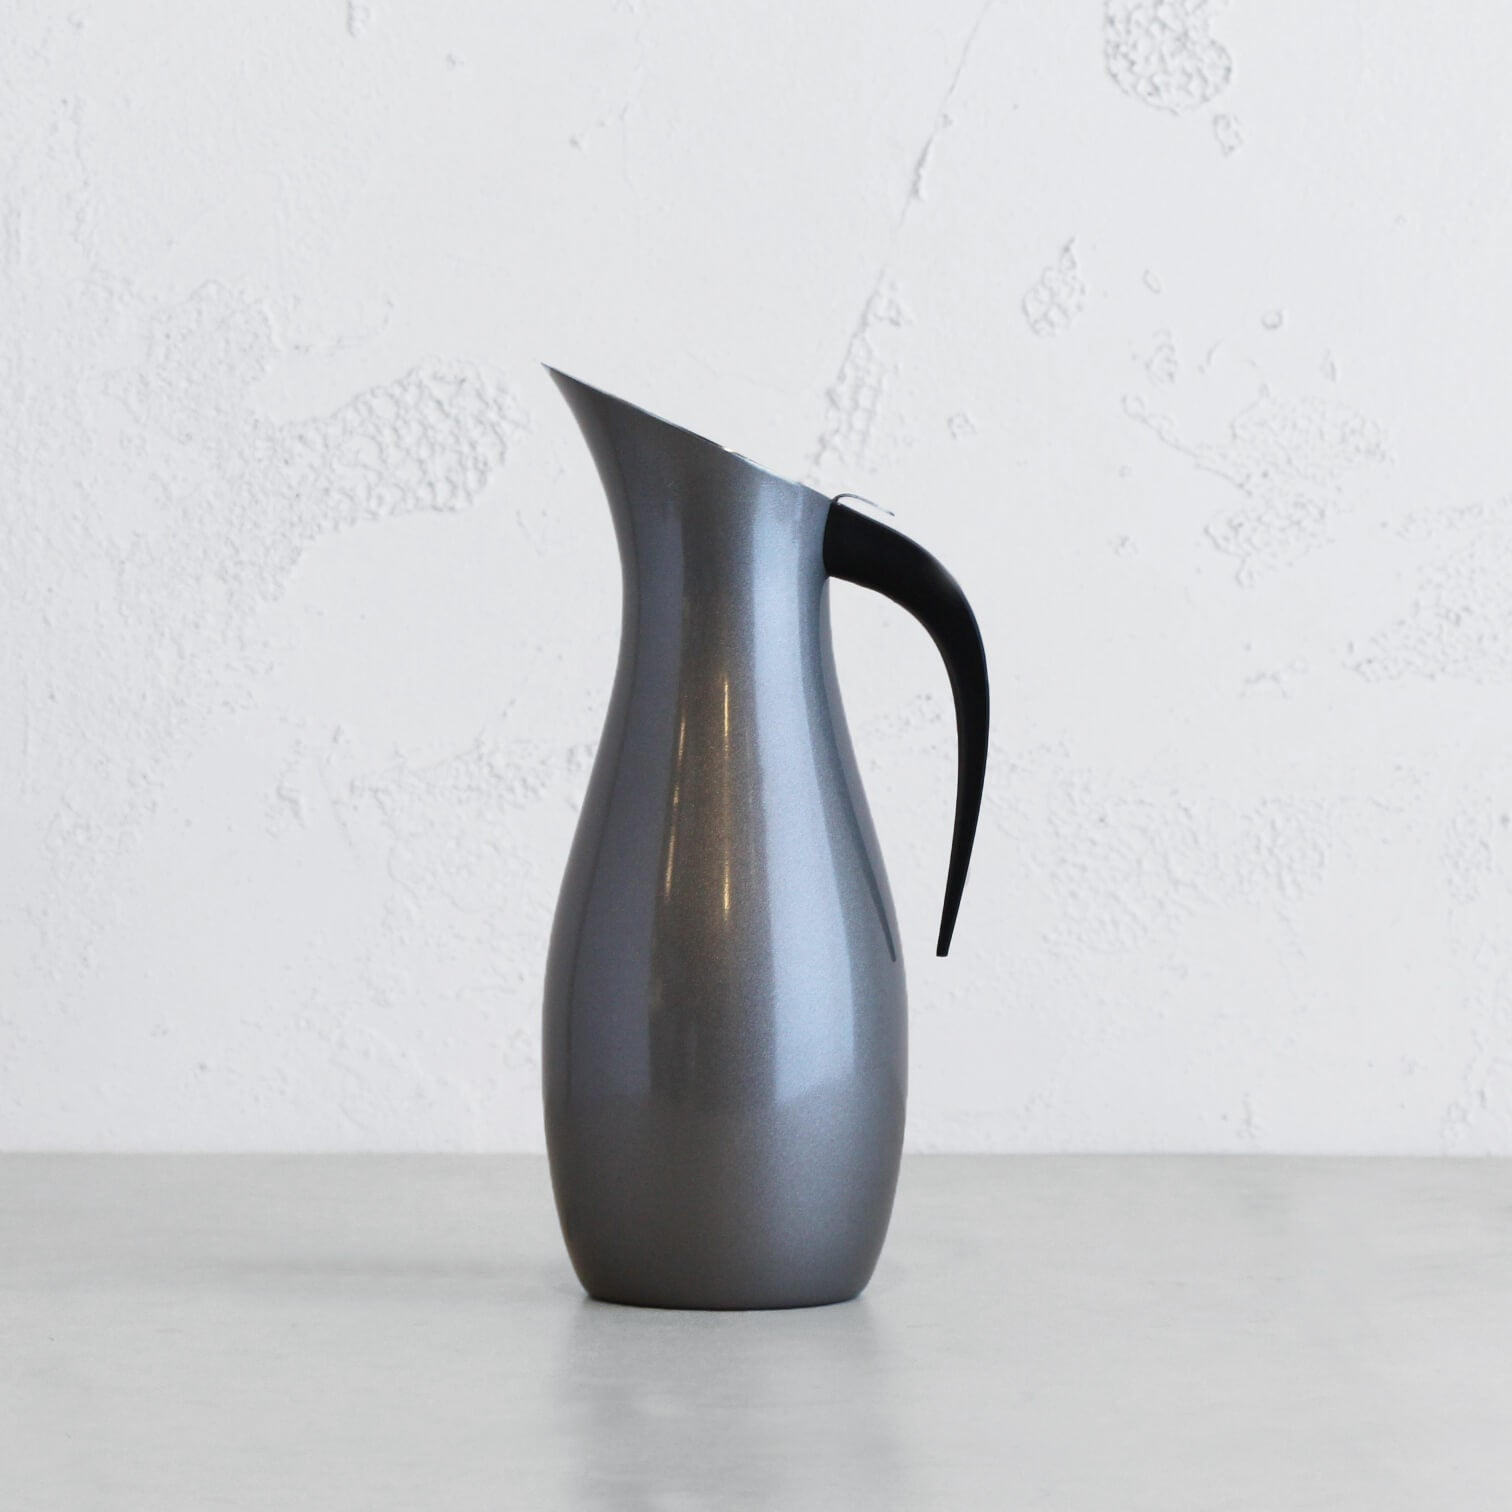 NUANCE WATER JUG | CARAFE STAINLESS STEEL WITH SATIN GREY EXTERIOR